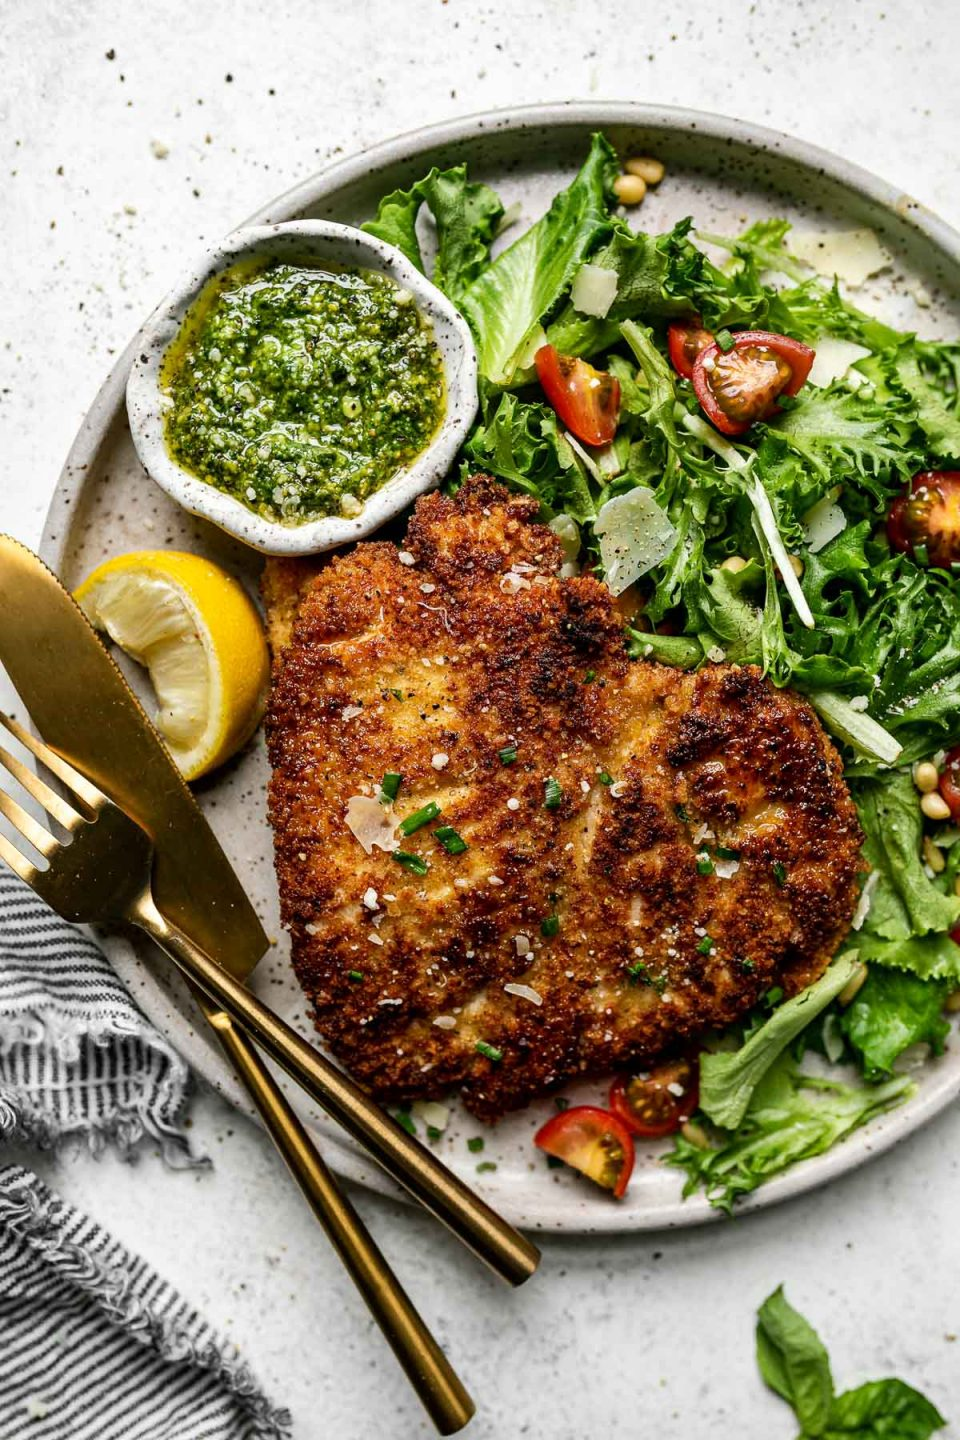 Parmsean chicken breast on a large plate with a green salad & a small bowl of pesto. The plate sits atop a white surface, next to a gray striped linen napkin.